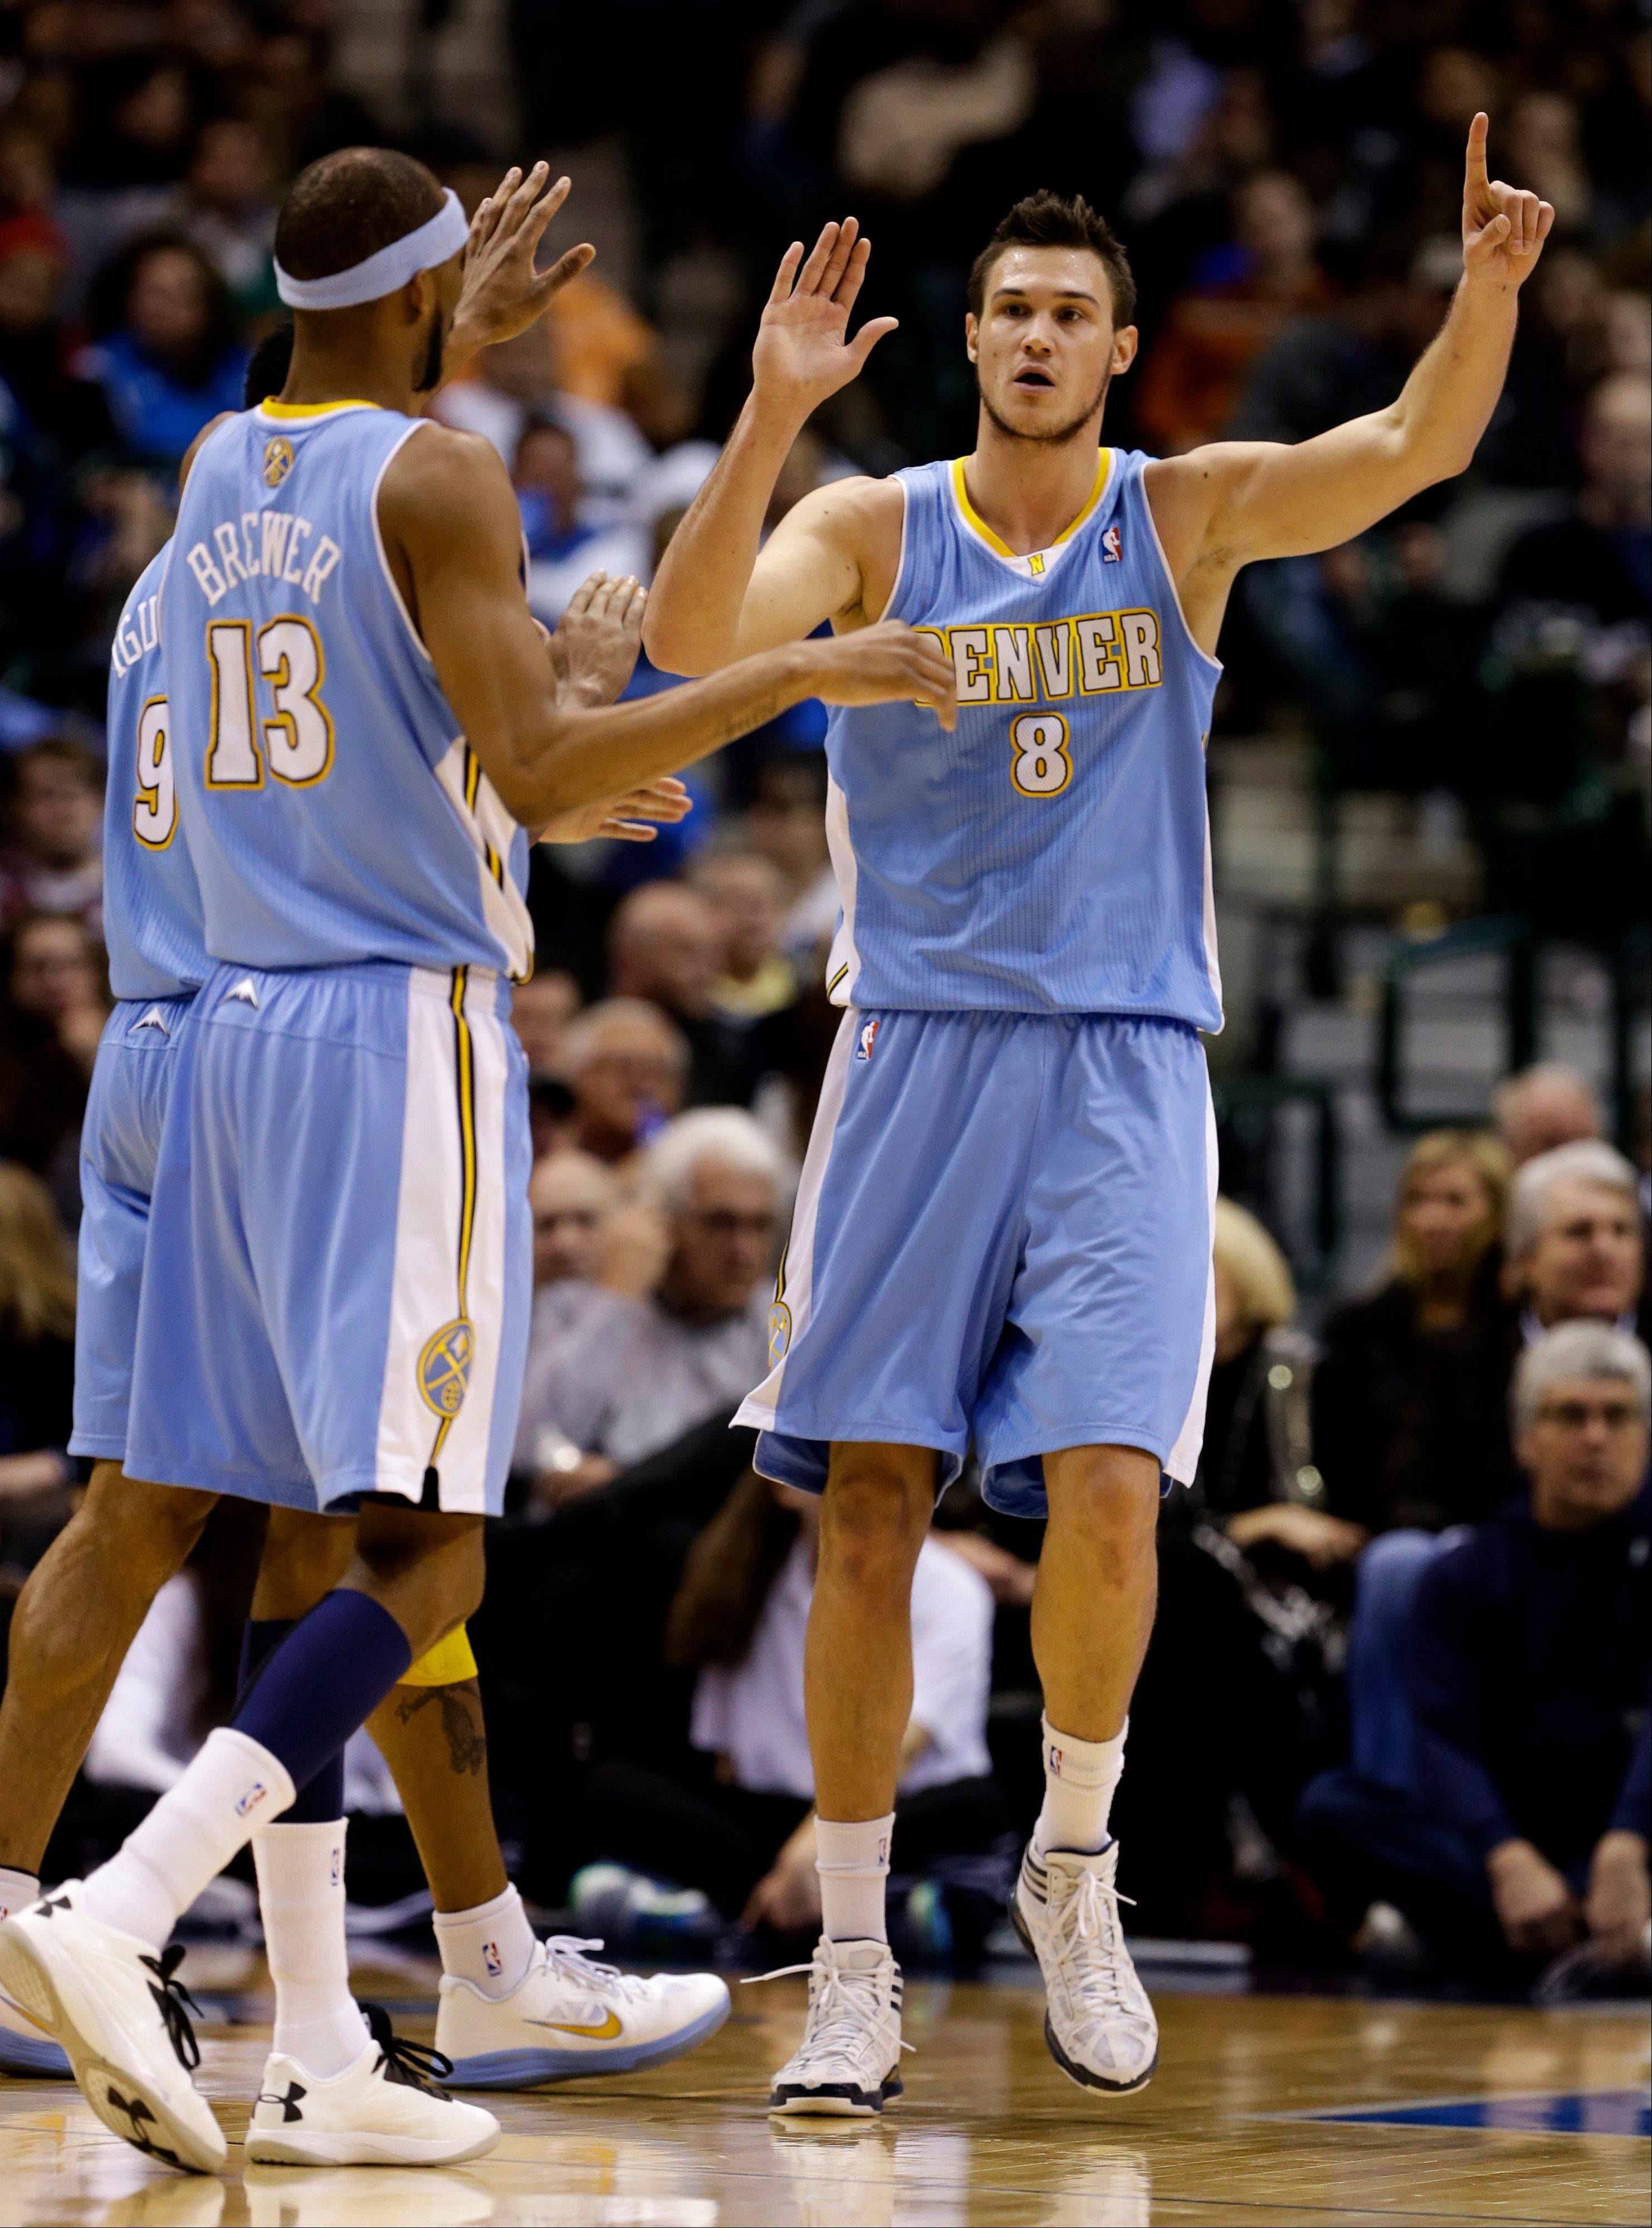 Denver�s Corey Brewer (13) and Andre Iguodala celebrate with teammate Danilo Gallinari after Gallinari scored in the second half Friday against the Dallas Mavericks in Dallas. Gallinari had a game-high 39-points in the 106-85 win.